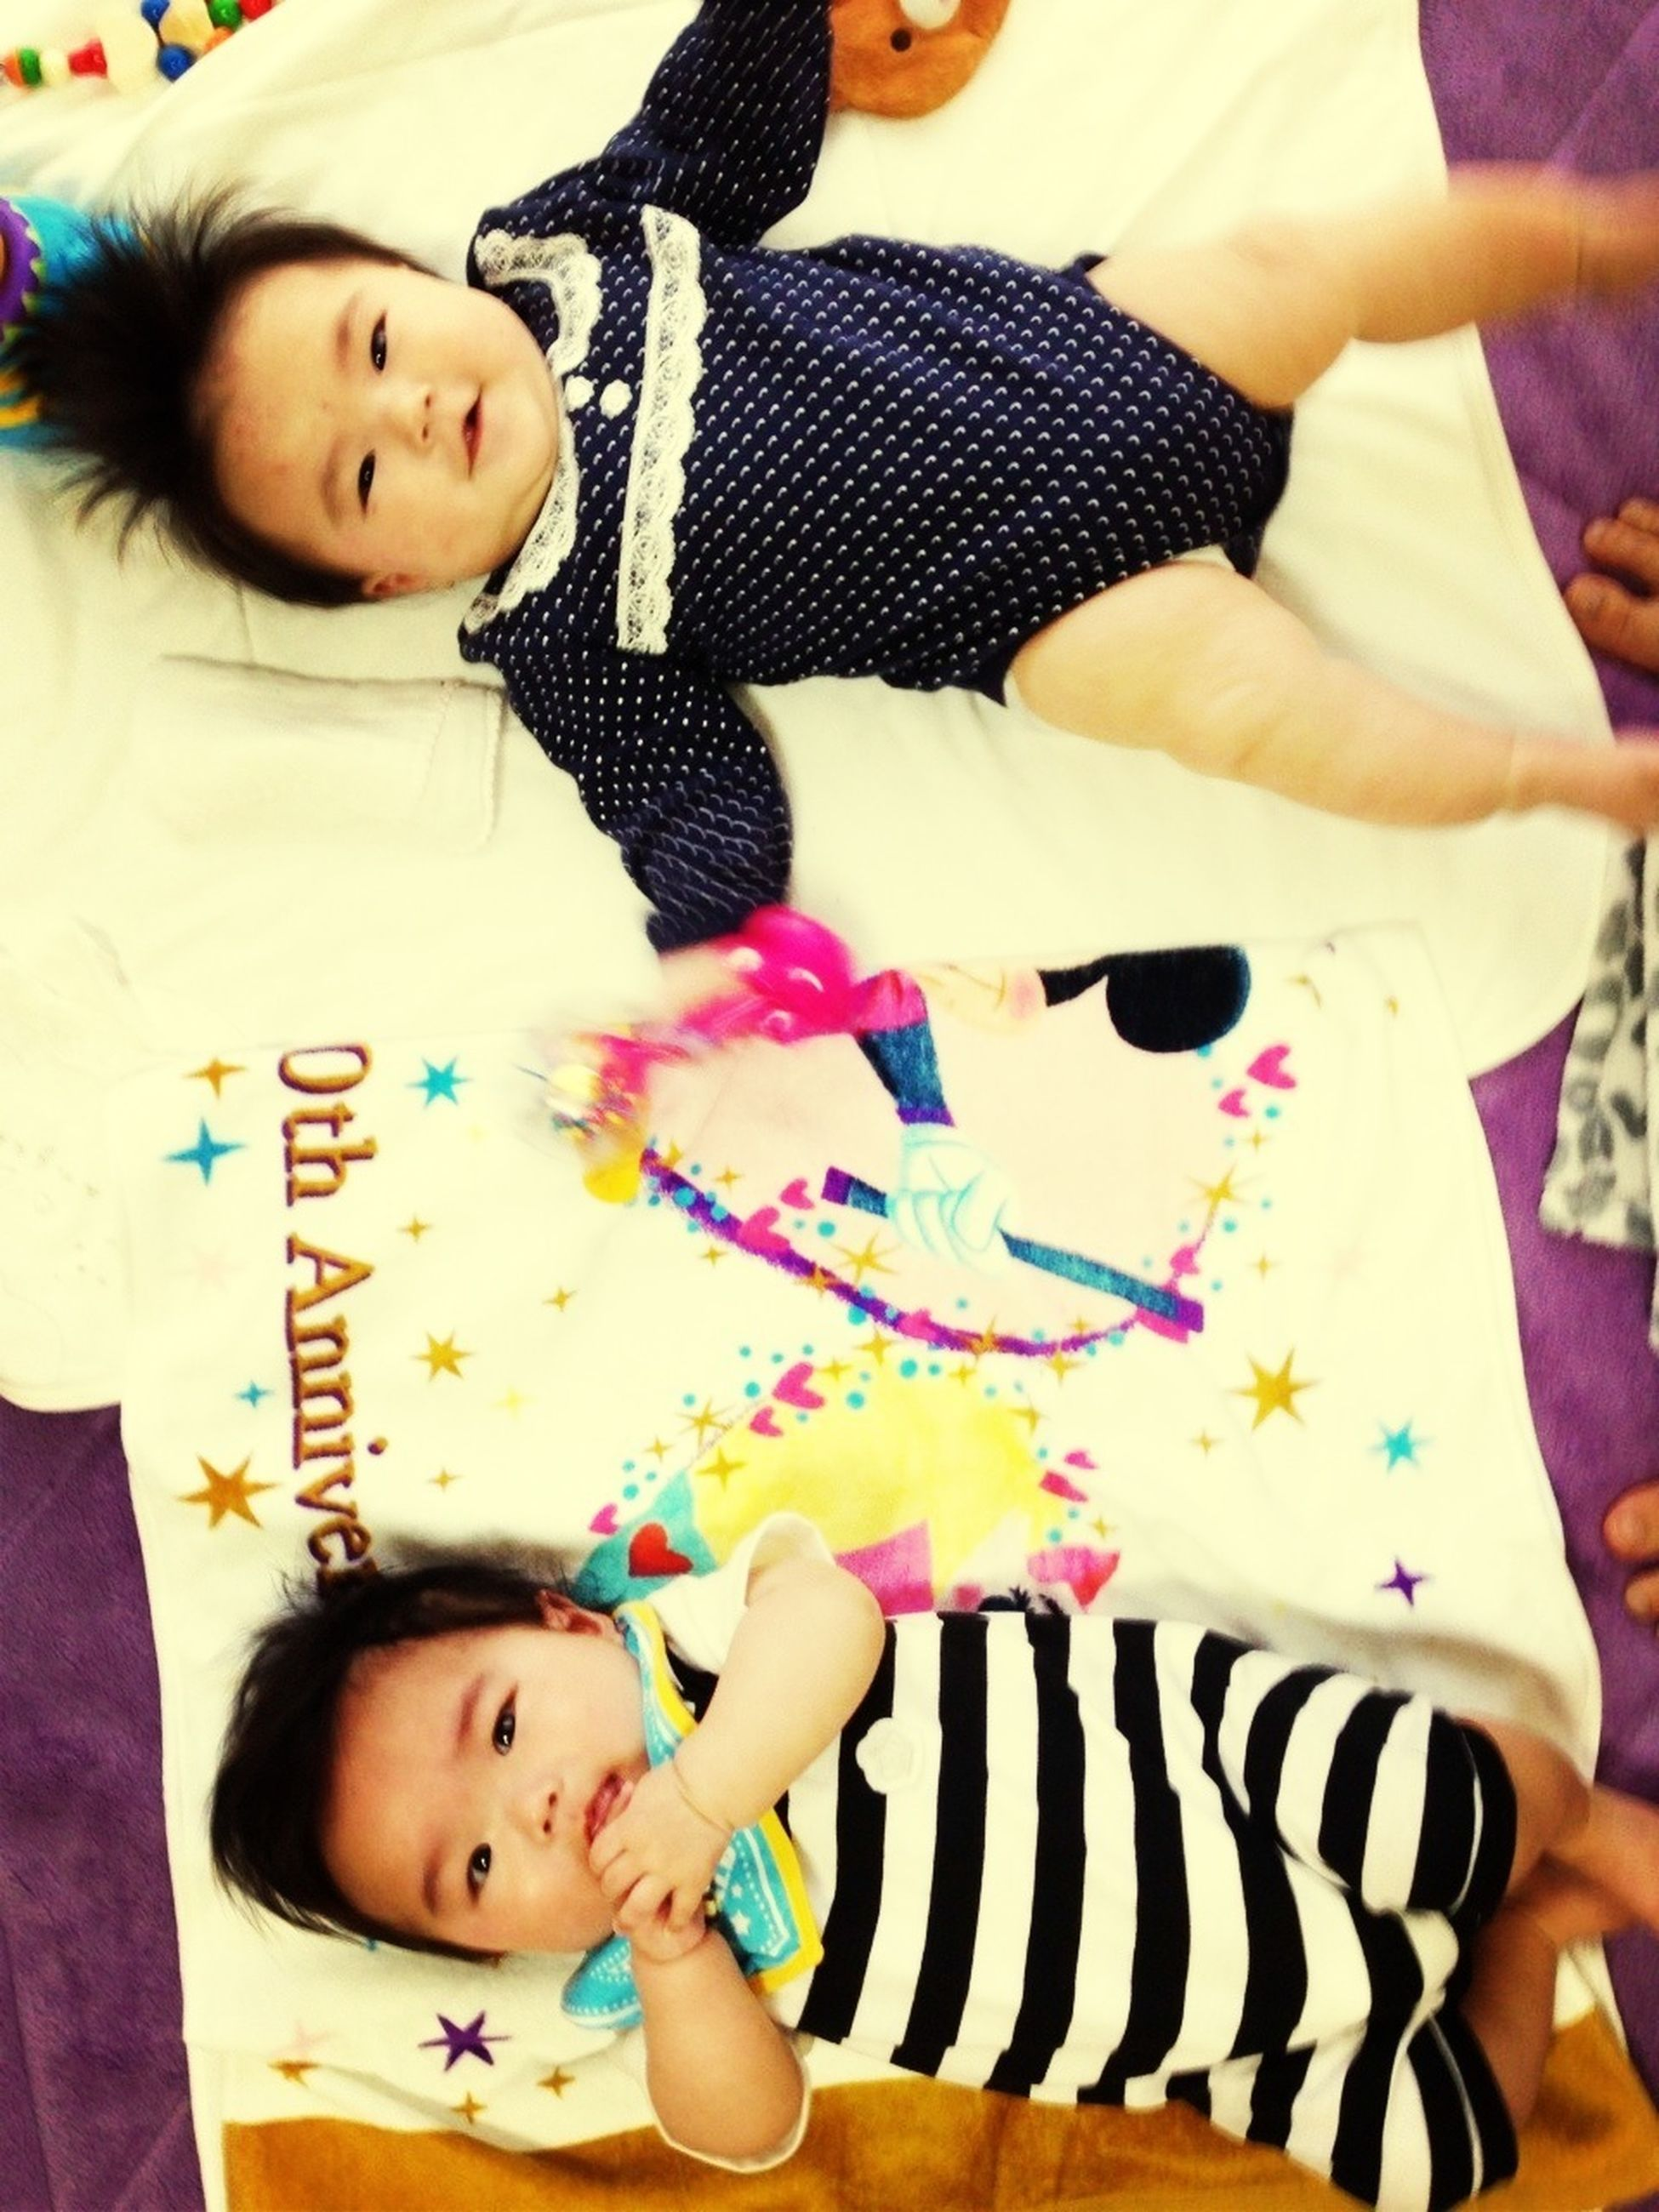 childhood, person, elementary age, innocence, cute, togetherness, girls, bonding, family, boys, lifestyles, indoors, leisure activity, love, happiness, casual clothing, smiling